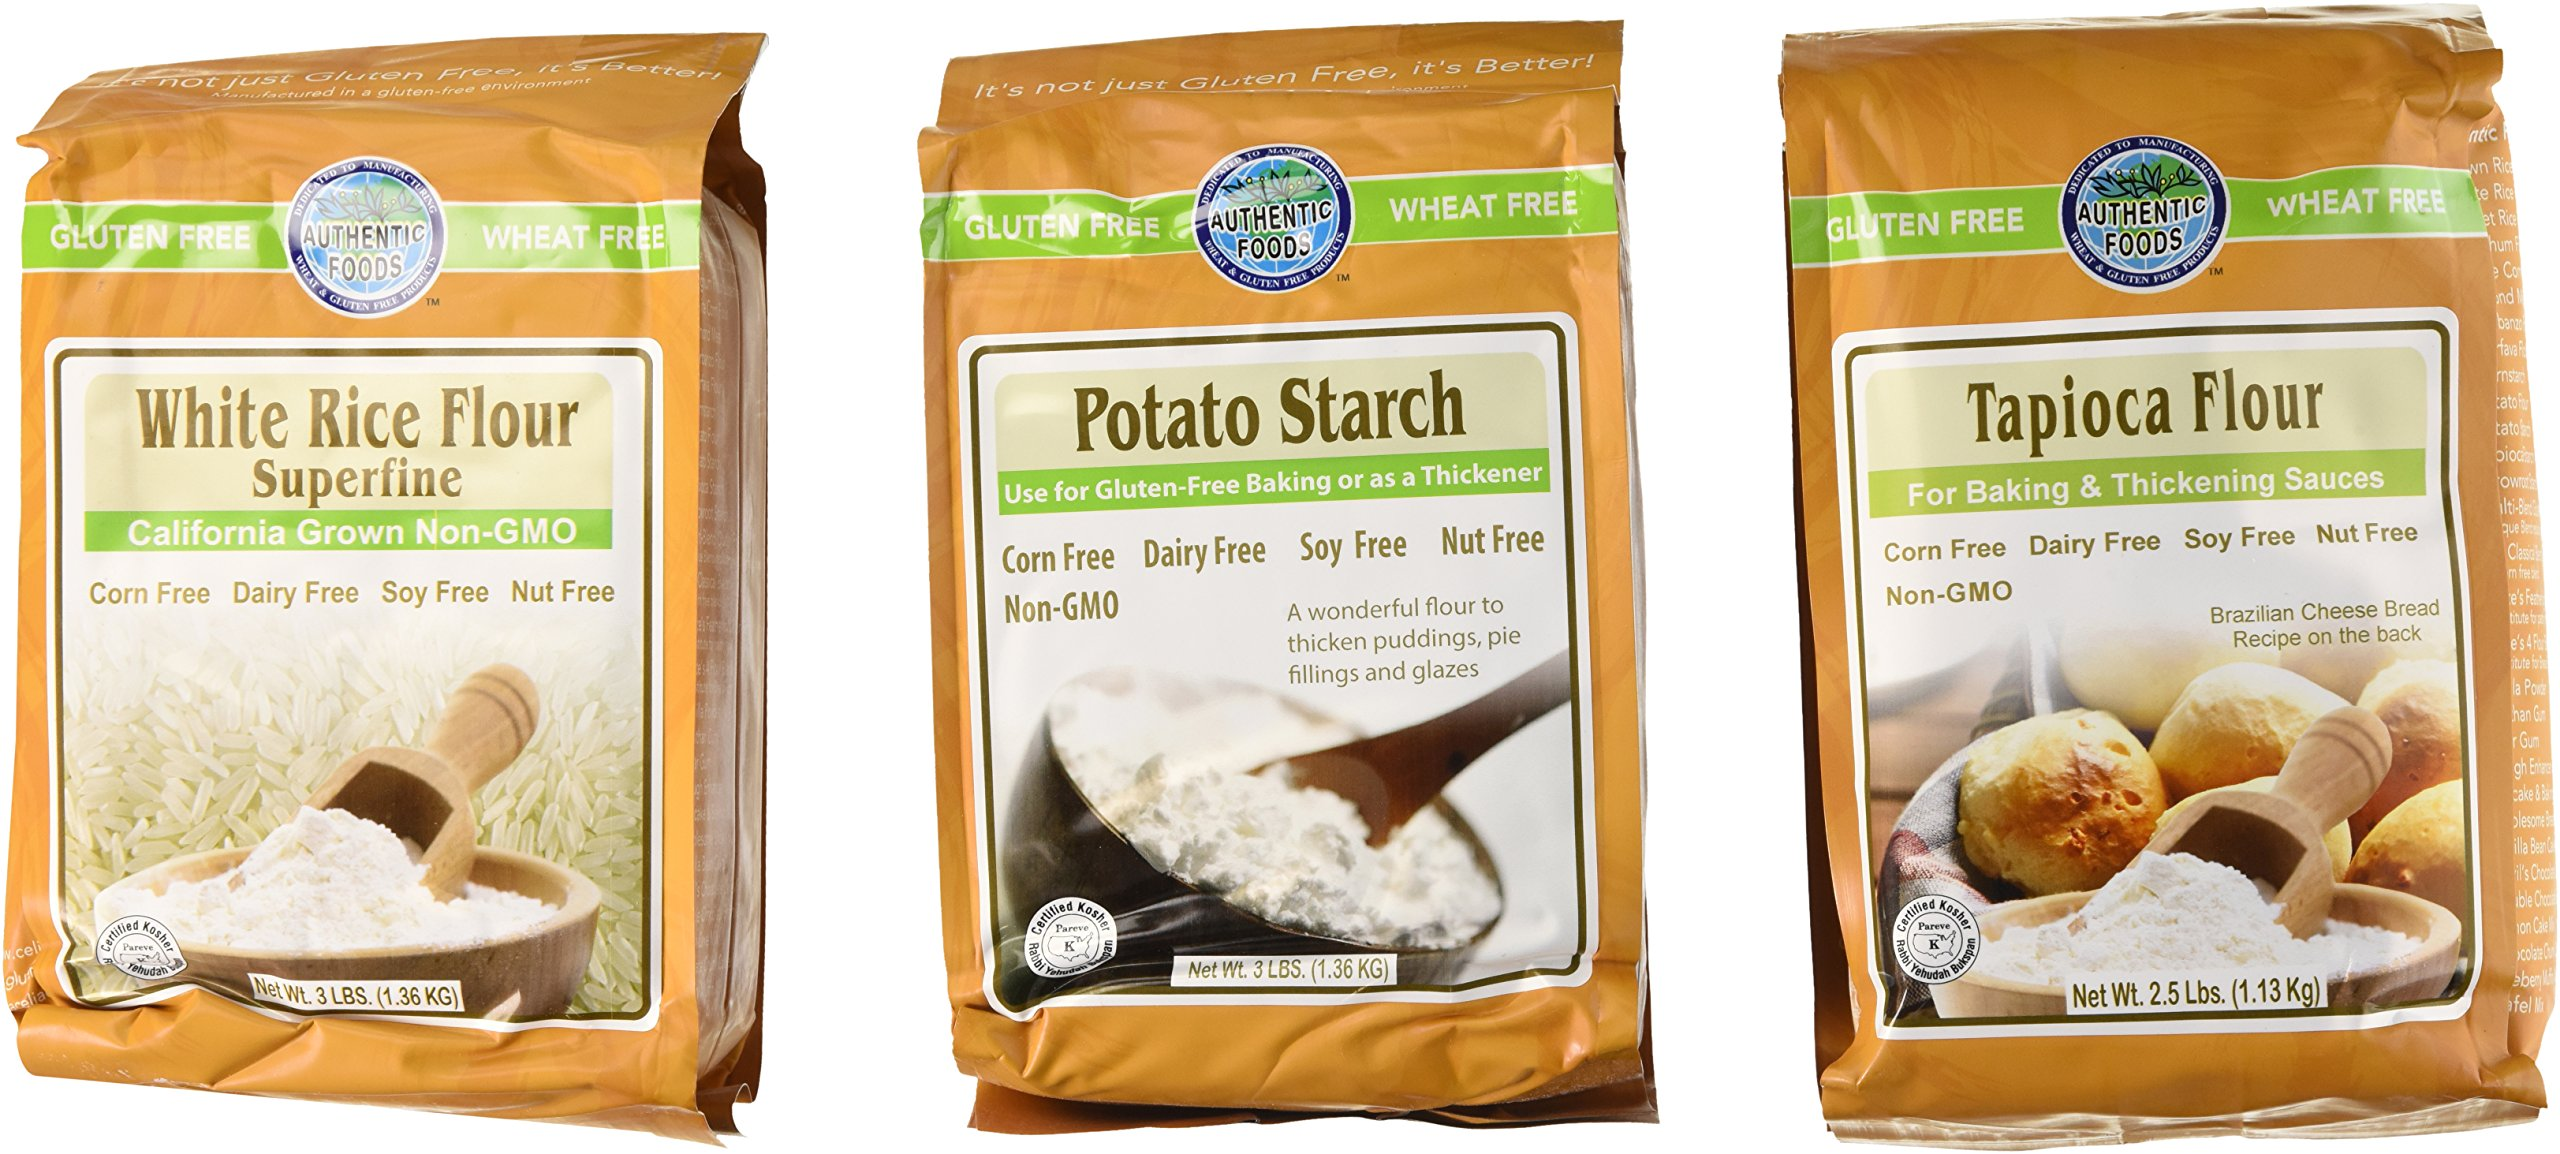 Authentic Foods Gluten Free Variety Pack (Pack of 3)